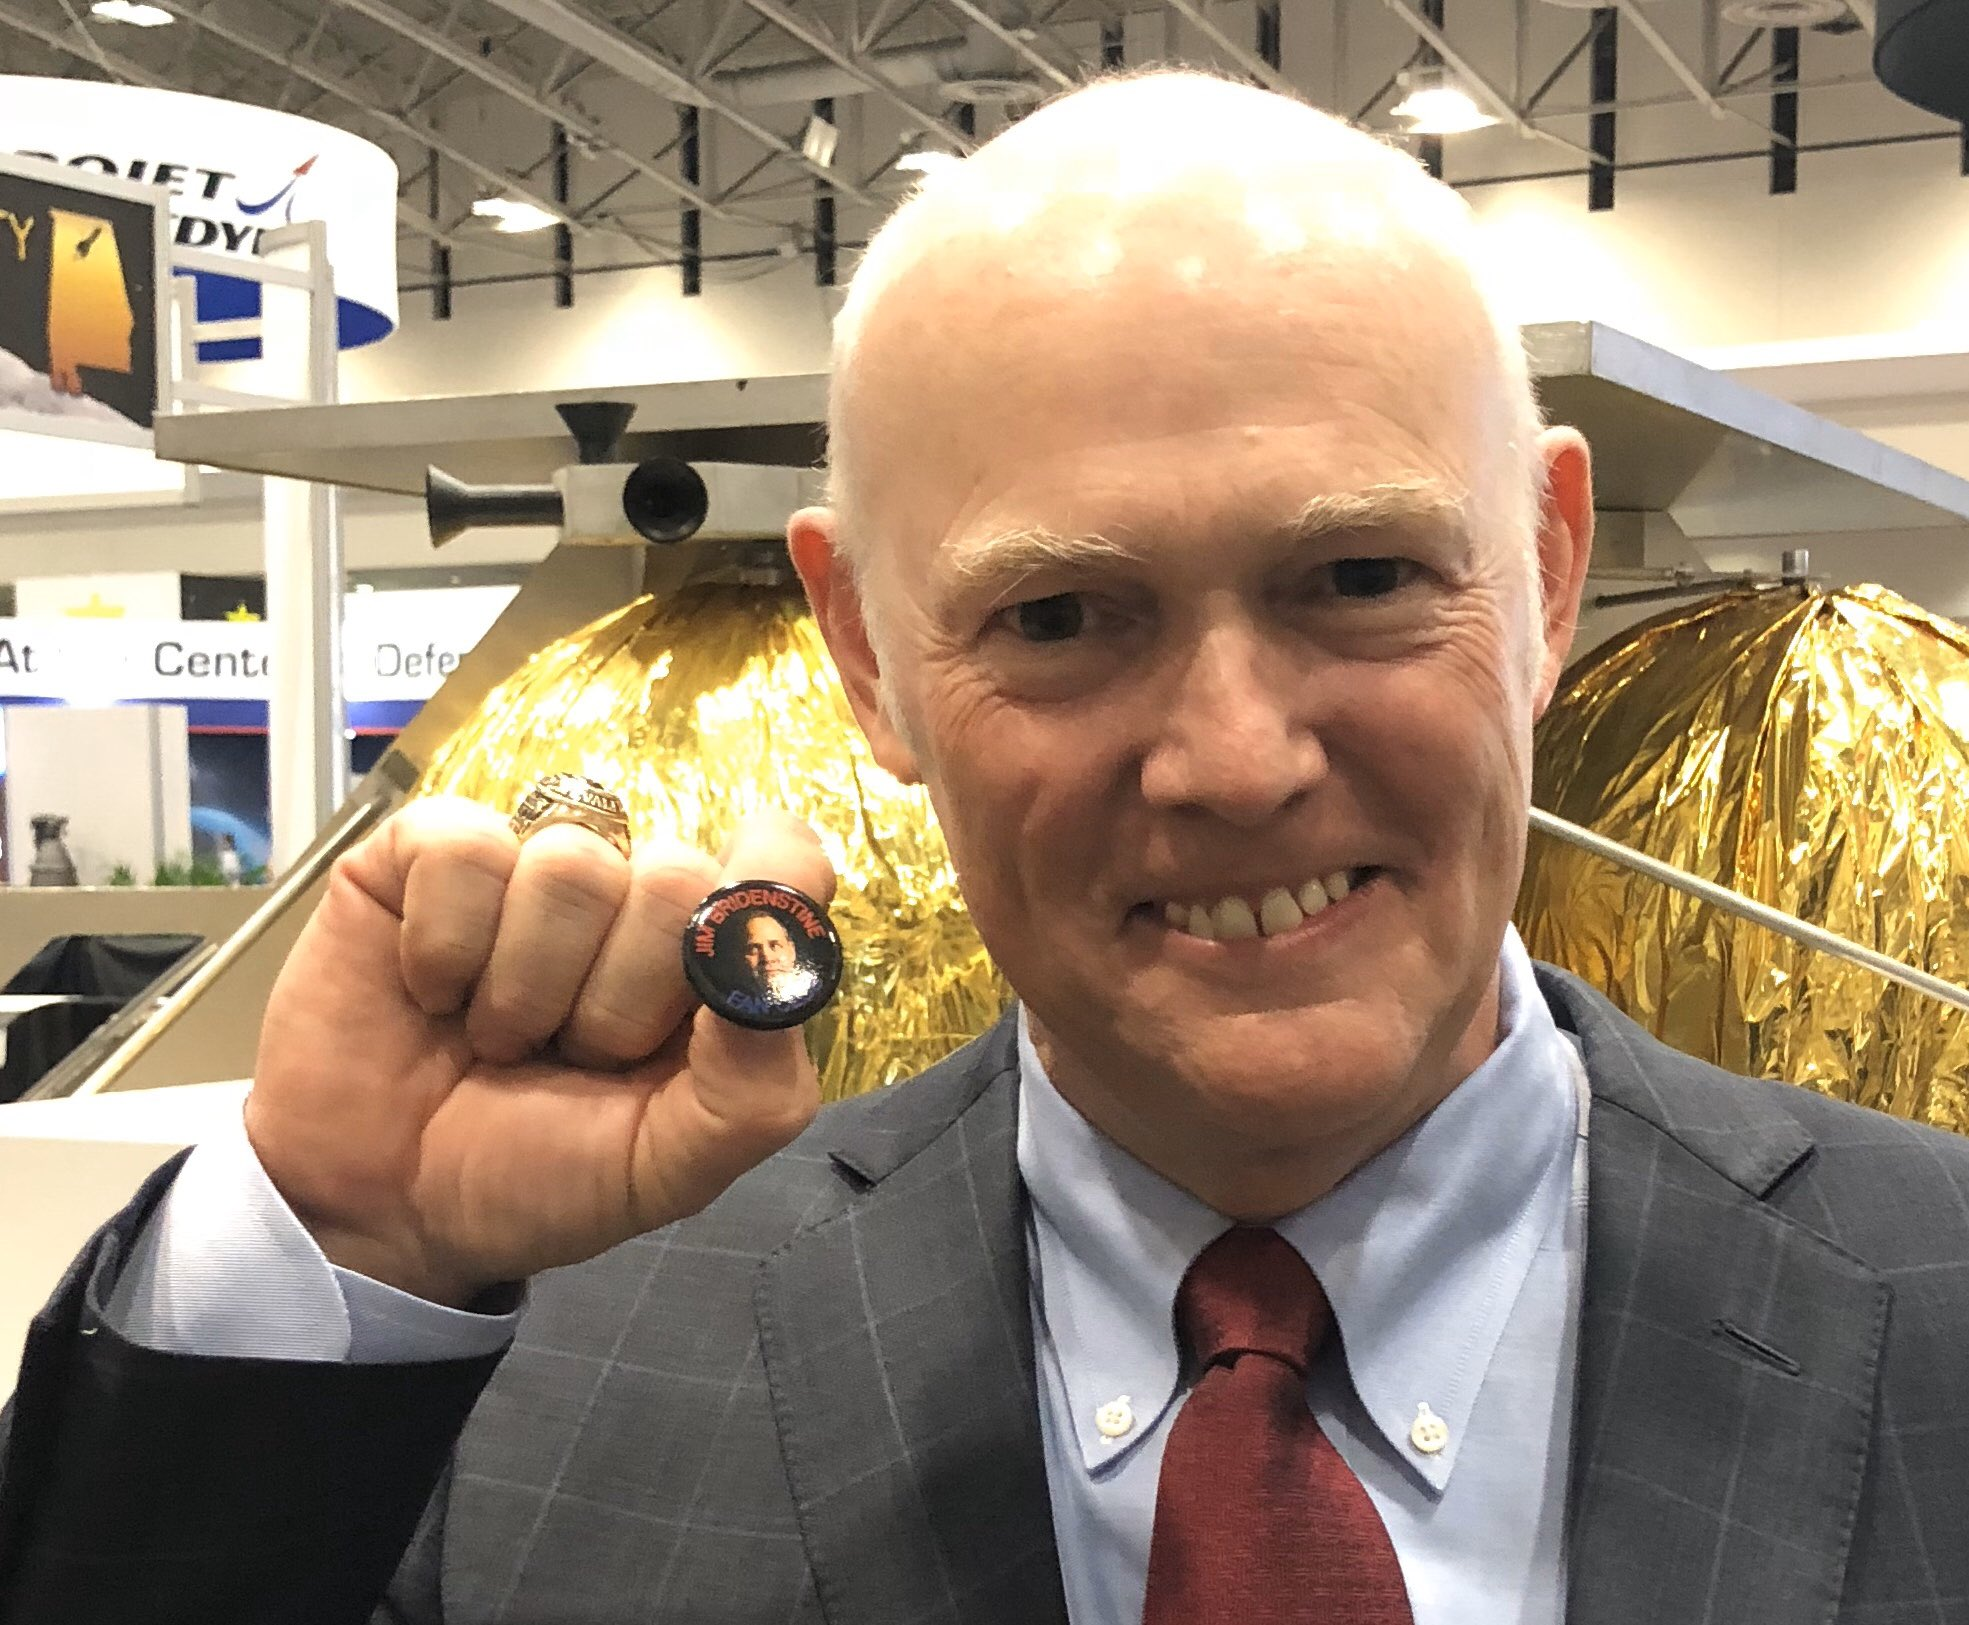 Tory Bruno, CEO, United Launch Alliance with JBFC Pin